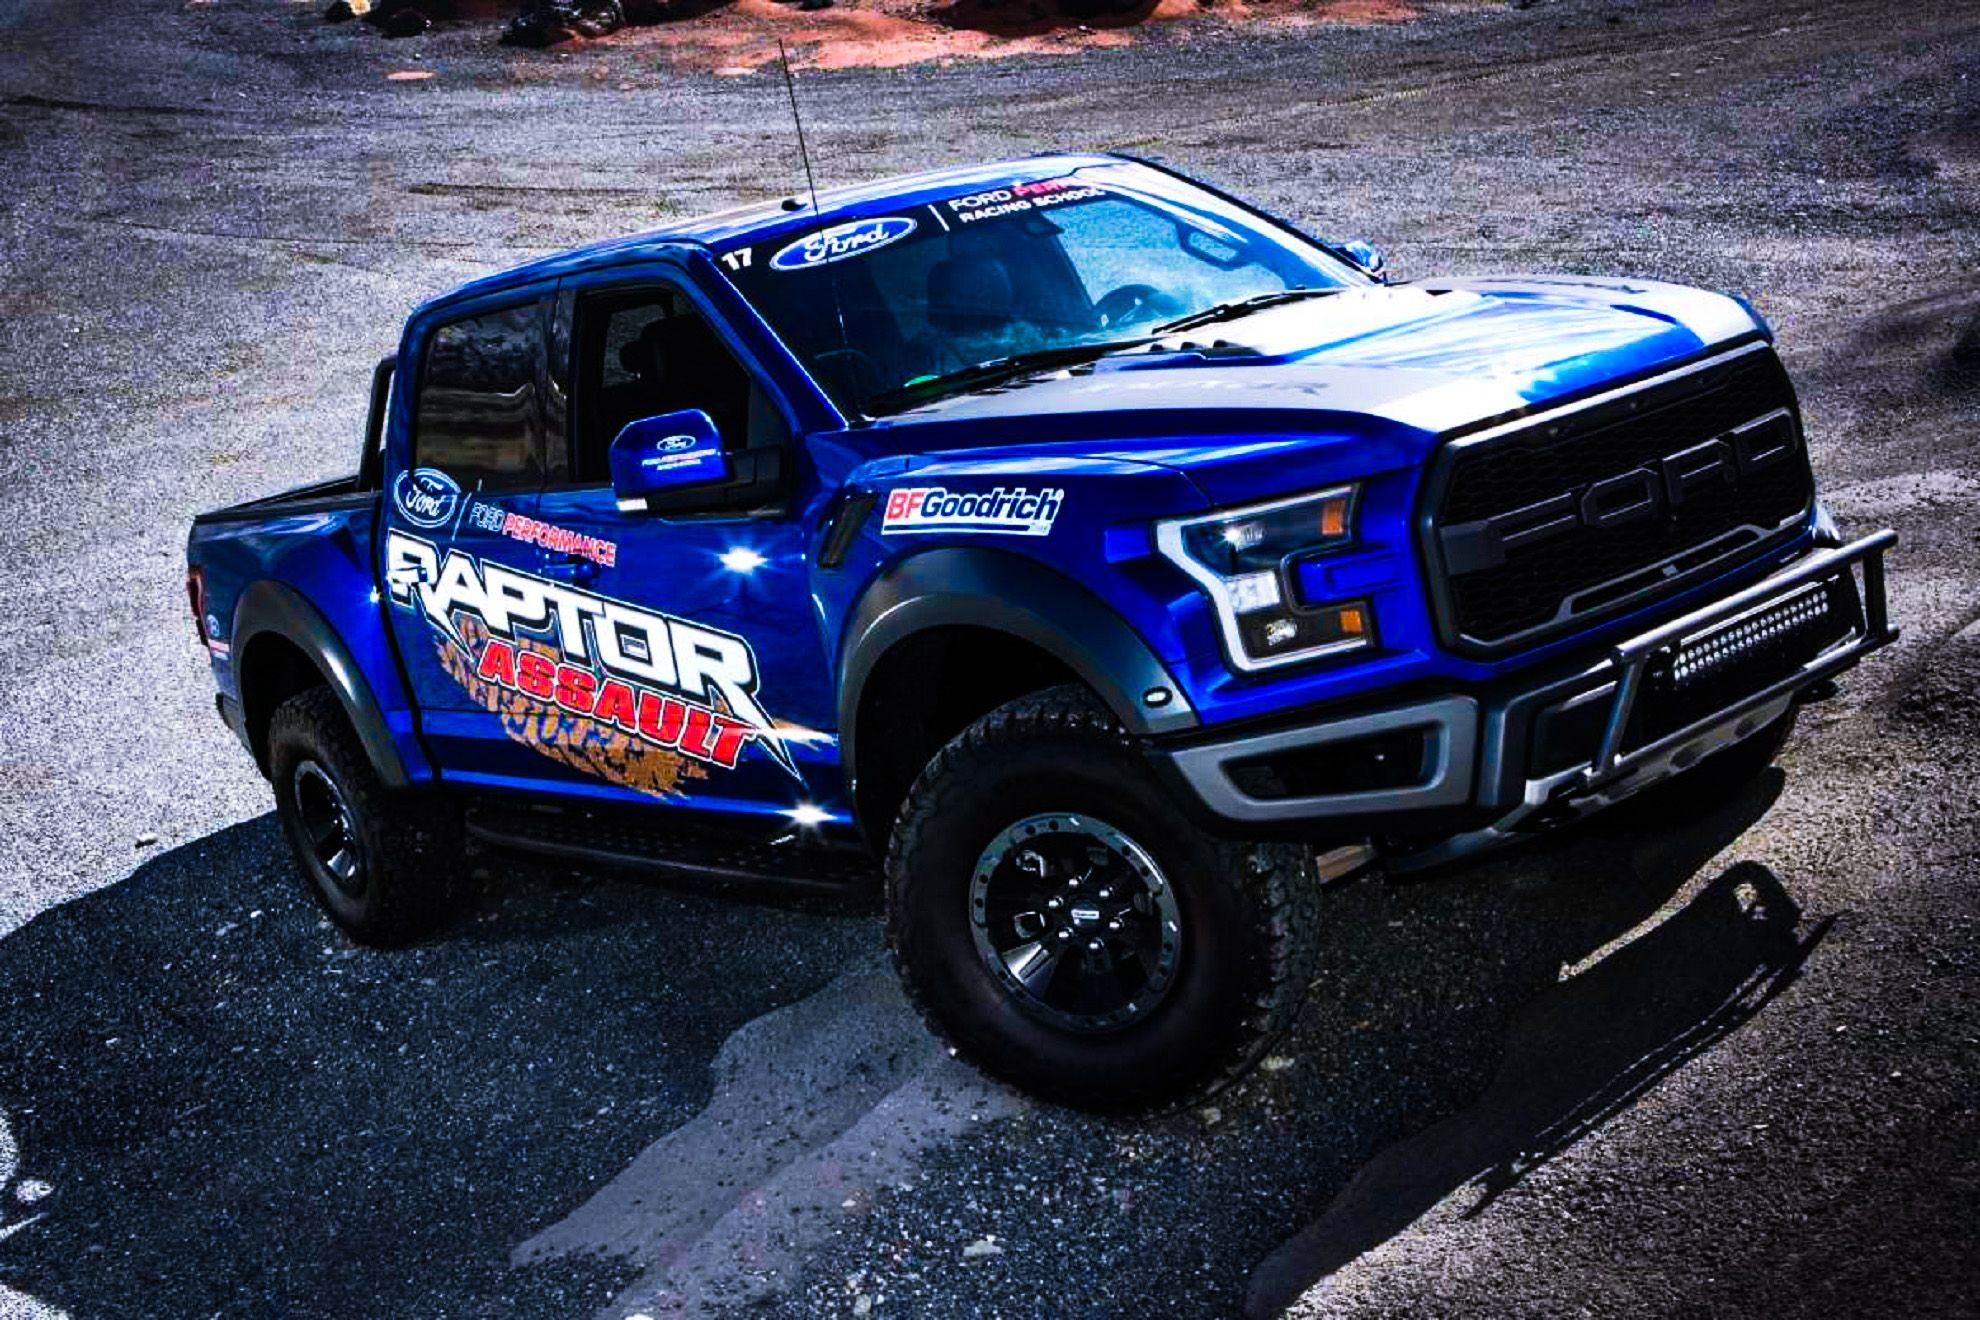 pin by paul muzzi muscroft on ford ford ford raptor chevy reaper. Black Bedroom Furniture Sets. Home Design Ideas